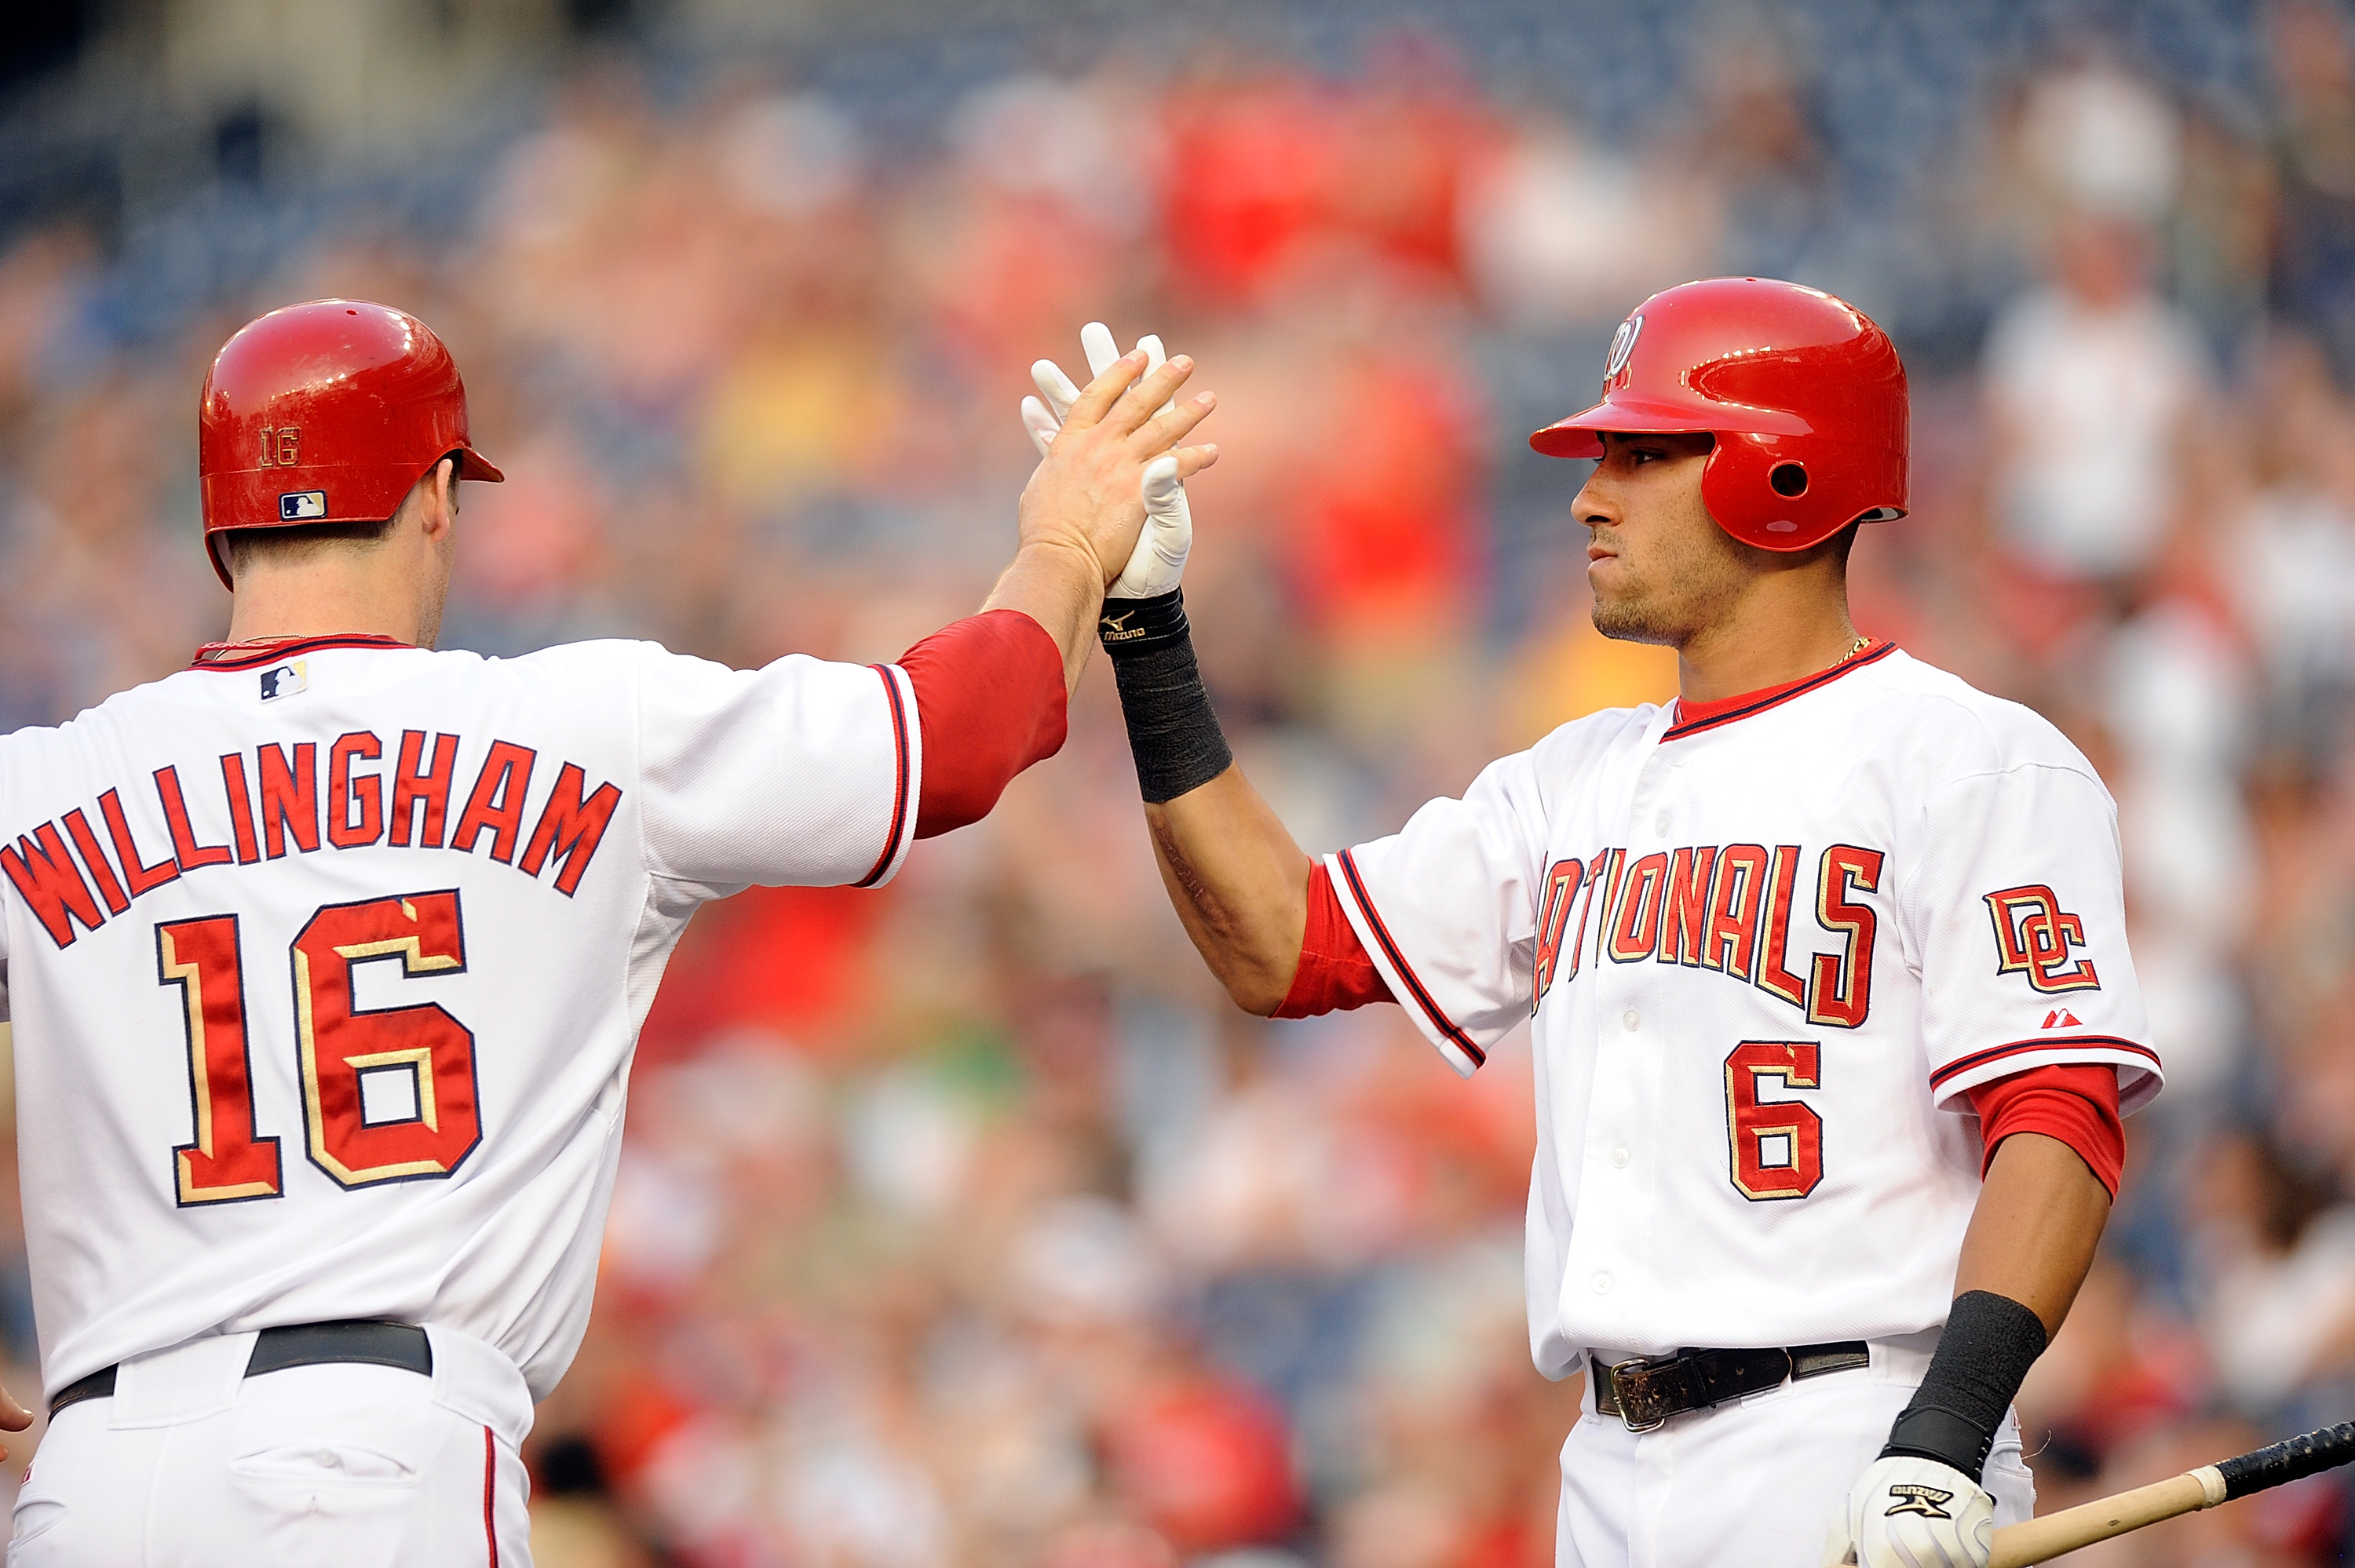 WASHINGTON - JULY 06:  Josh Willingham #16 of the Washington Nationals is congratulated by Ian Desmond #6 after scoring in the first inning against the San Diego Padres at Nationals Park on July 6, 2010 in Washington, DC.  (Photo by Greg Fiume/Getty Image